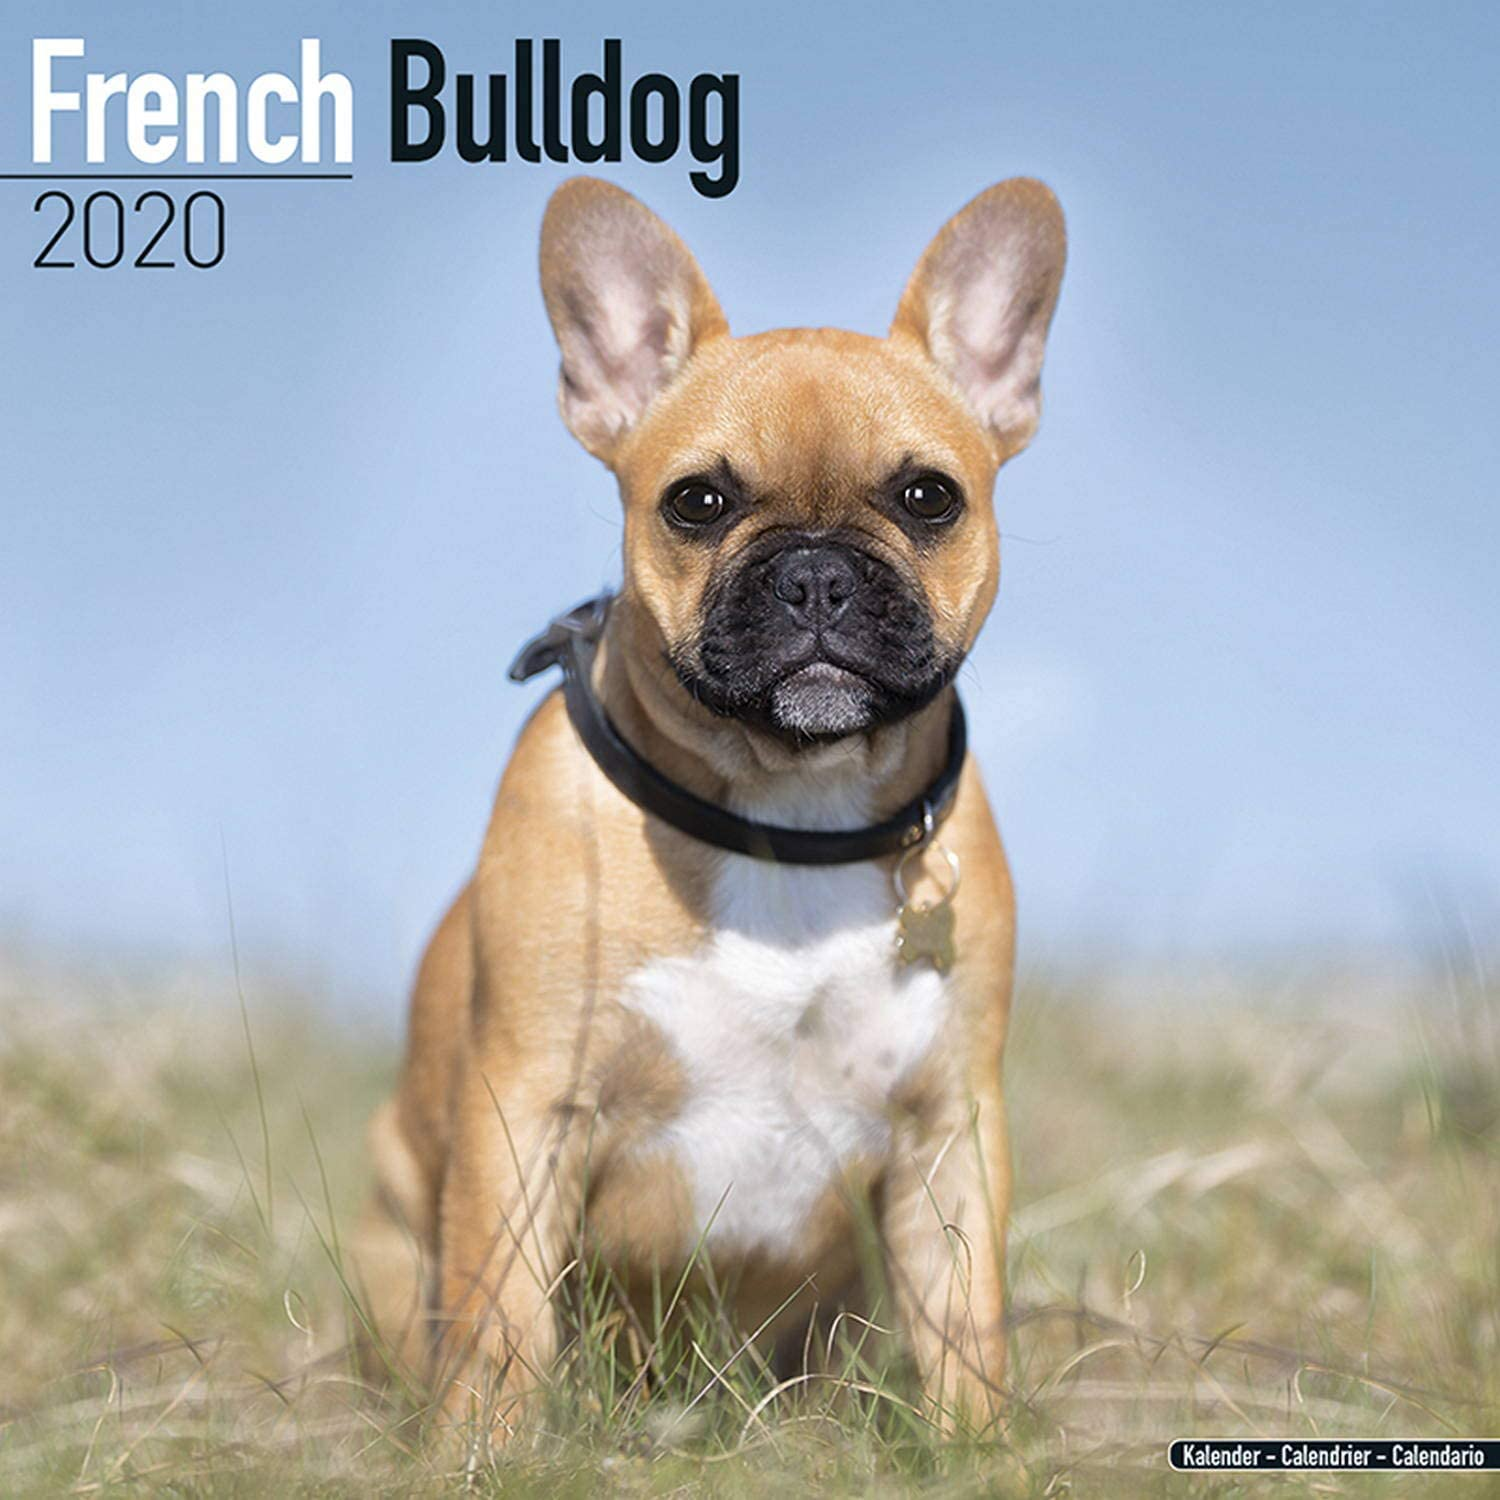 French Bulldog Calendar 2020 Dog Breed Calendar Wall Calendar 2019 2020